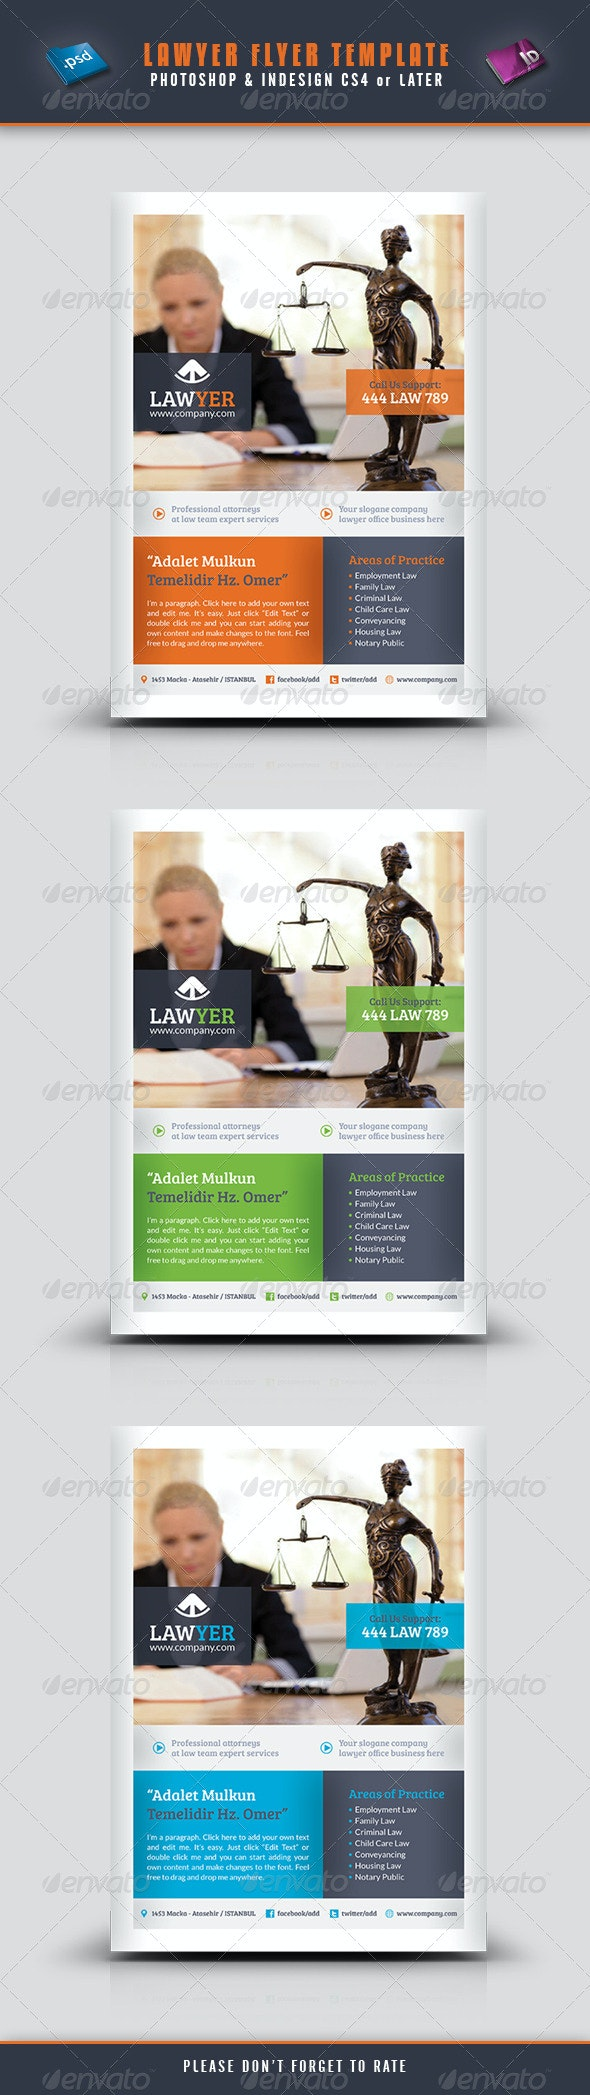 Lawyer Flyer Template - Corporate Flyers